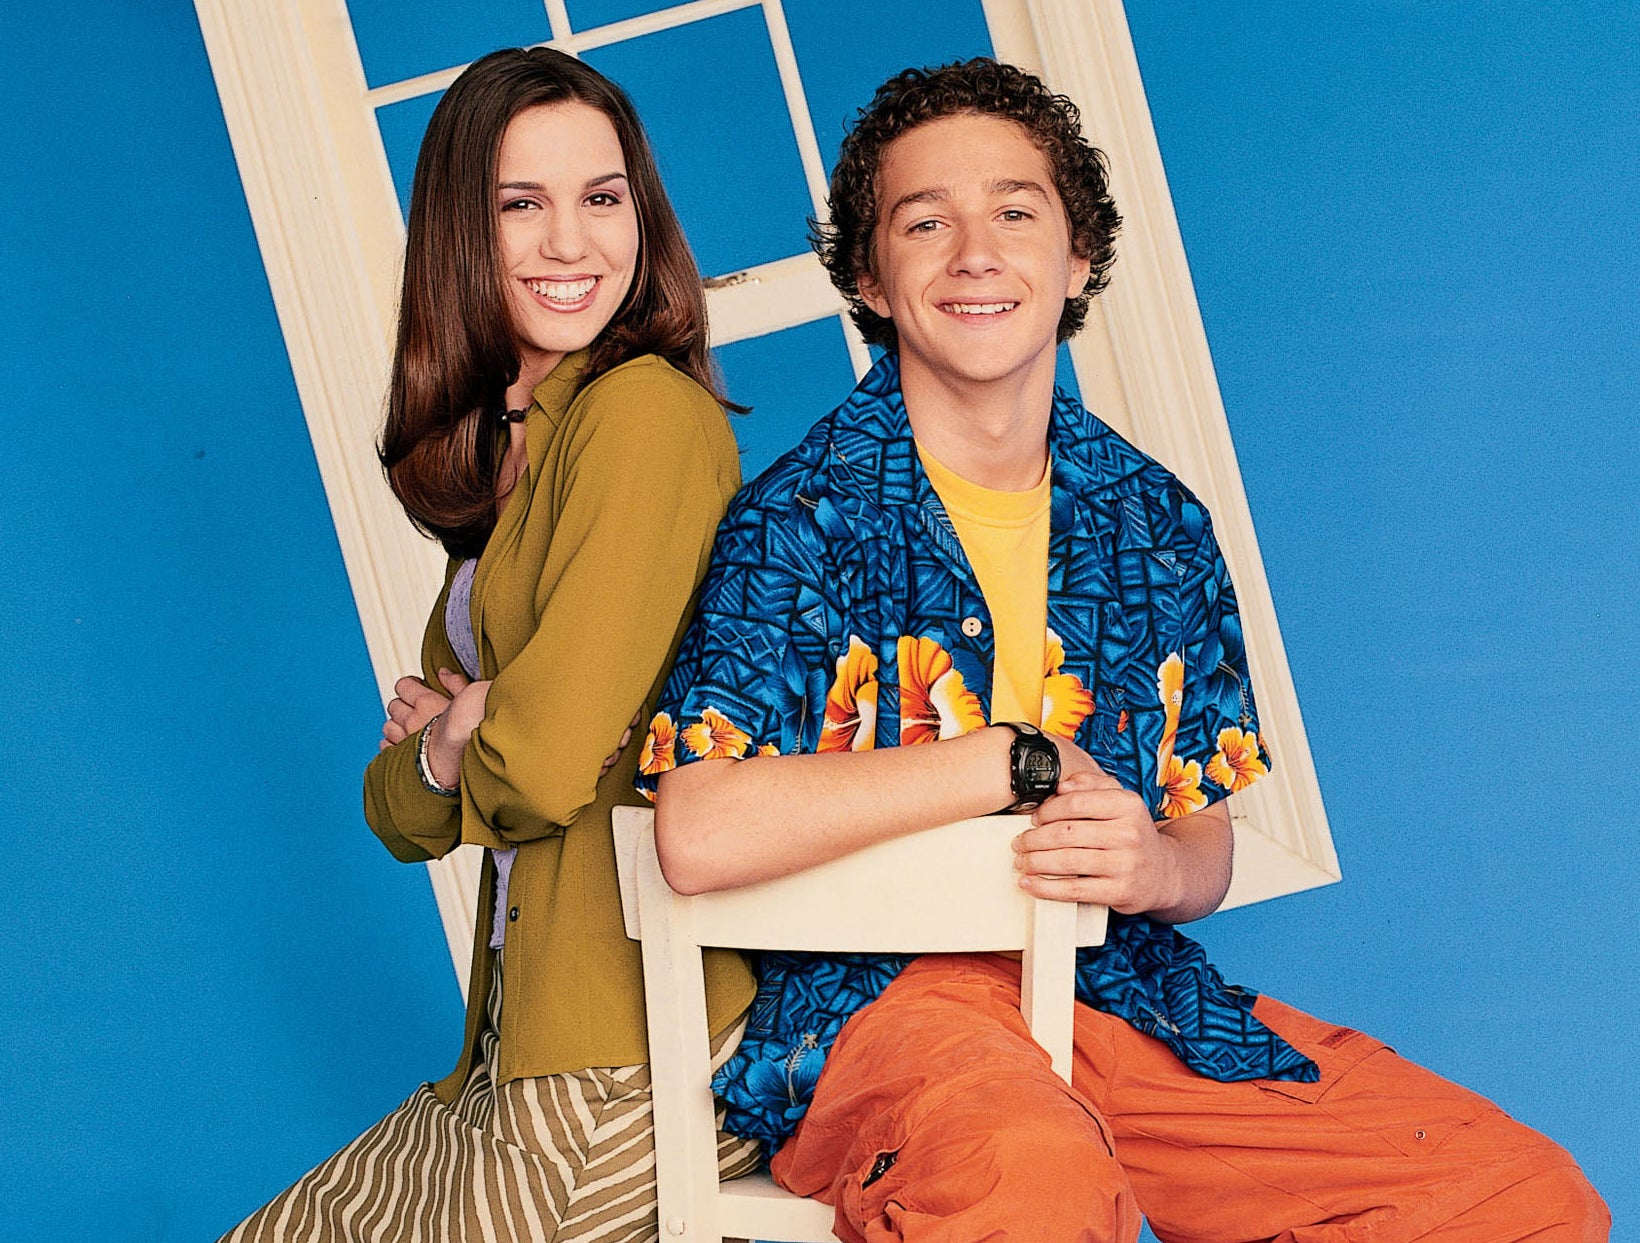 Christy poses with her Even Stevens co-stars in a promo photo